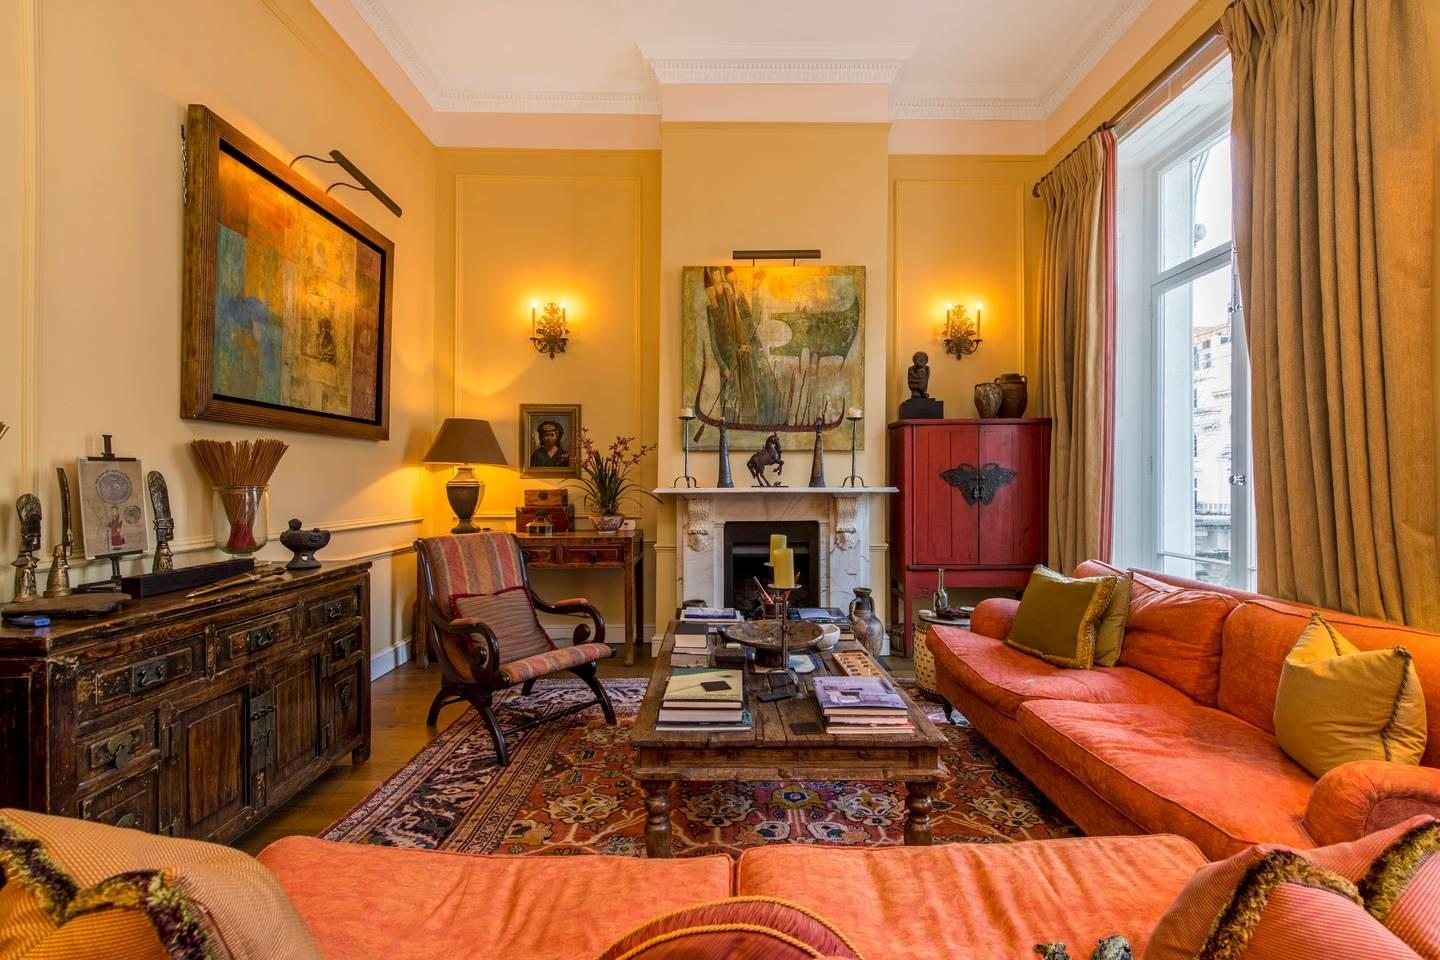 Property Image 1 - Stunning Bayswater Apartment with Divine Furnishings